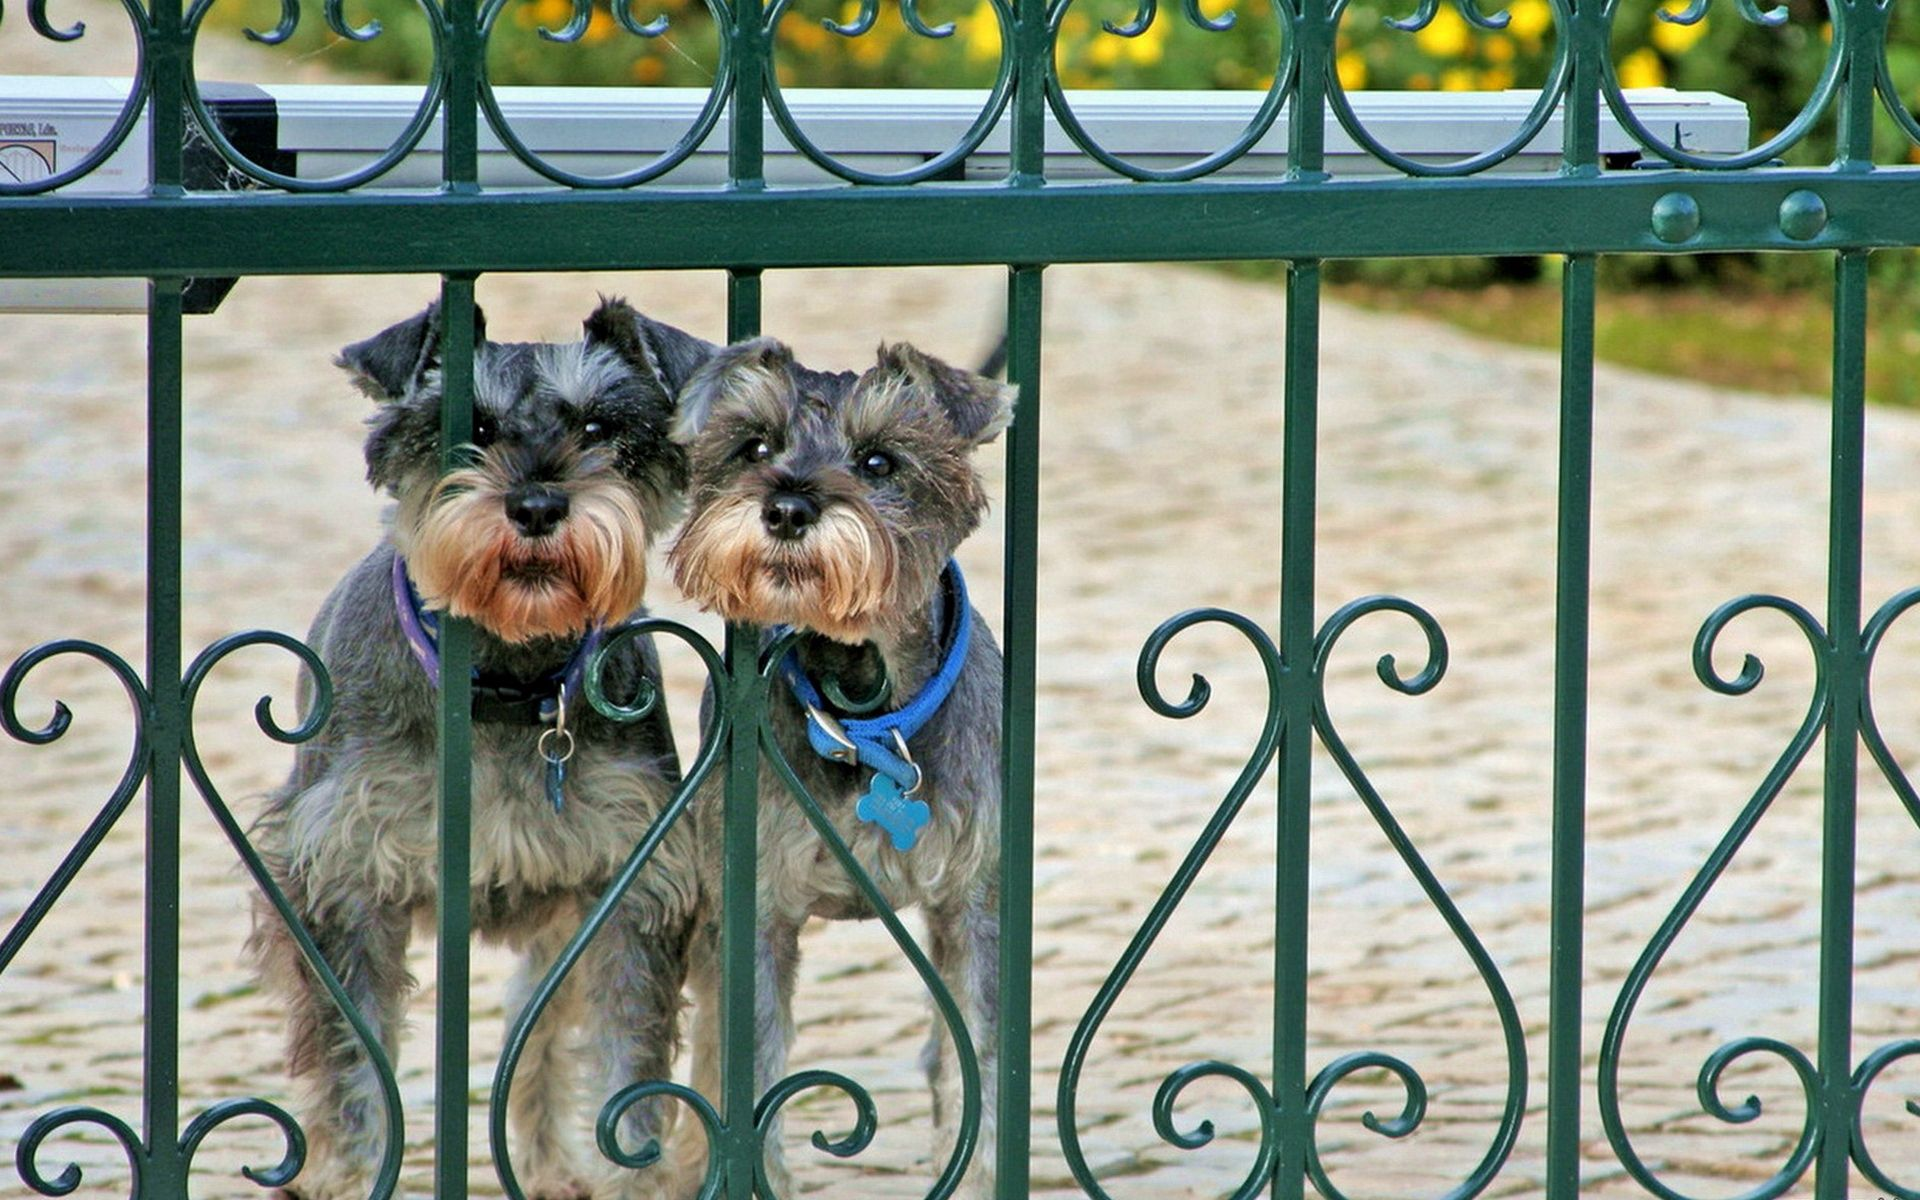 157151 download wallpaper Animals, Miniature Schnauzer, Cergschnauzer, Dogs, Fence, Fencing, Enclosure, Peek Out, Look Out, Couple, Pair screensavers and pictures for free